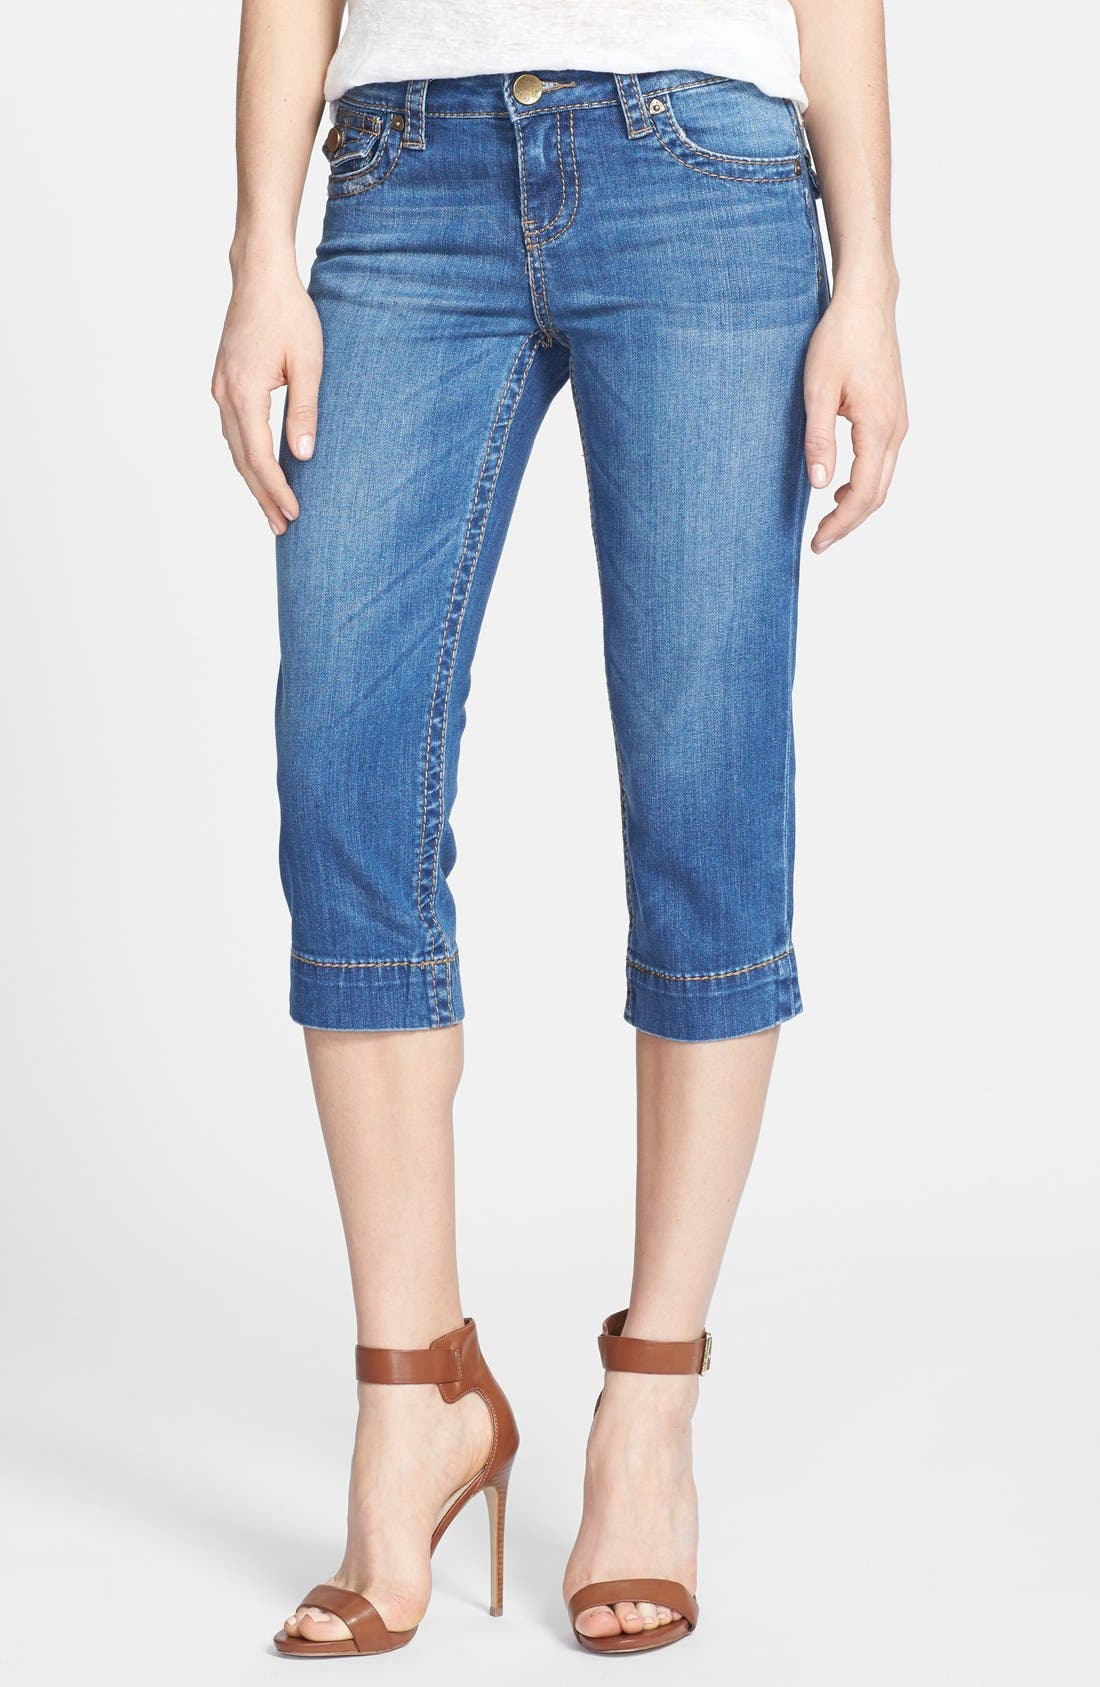 Alternate Image 1 Selected - KUT from the Kloth 'Natalie' Crop Jeans (Function)